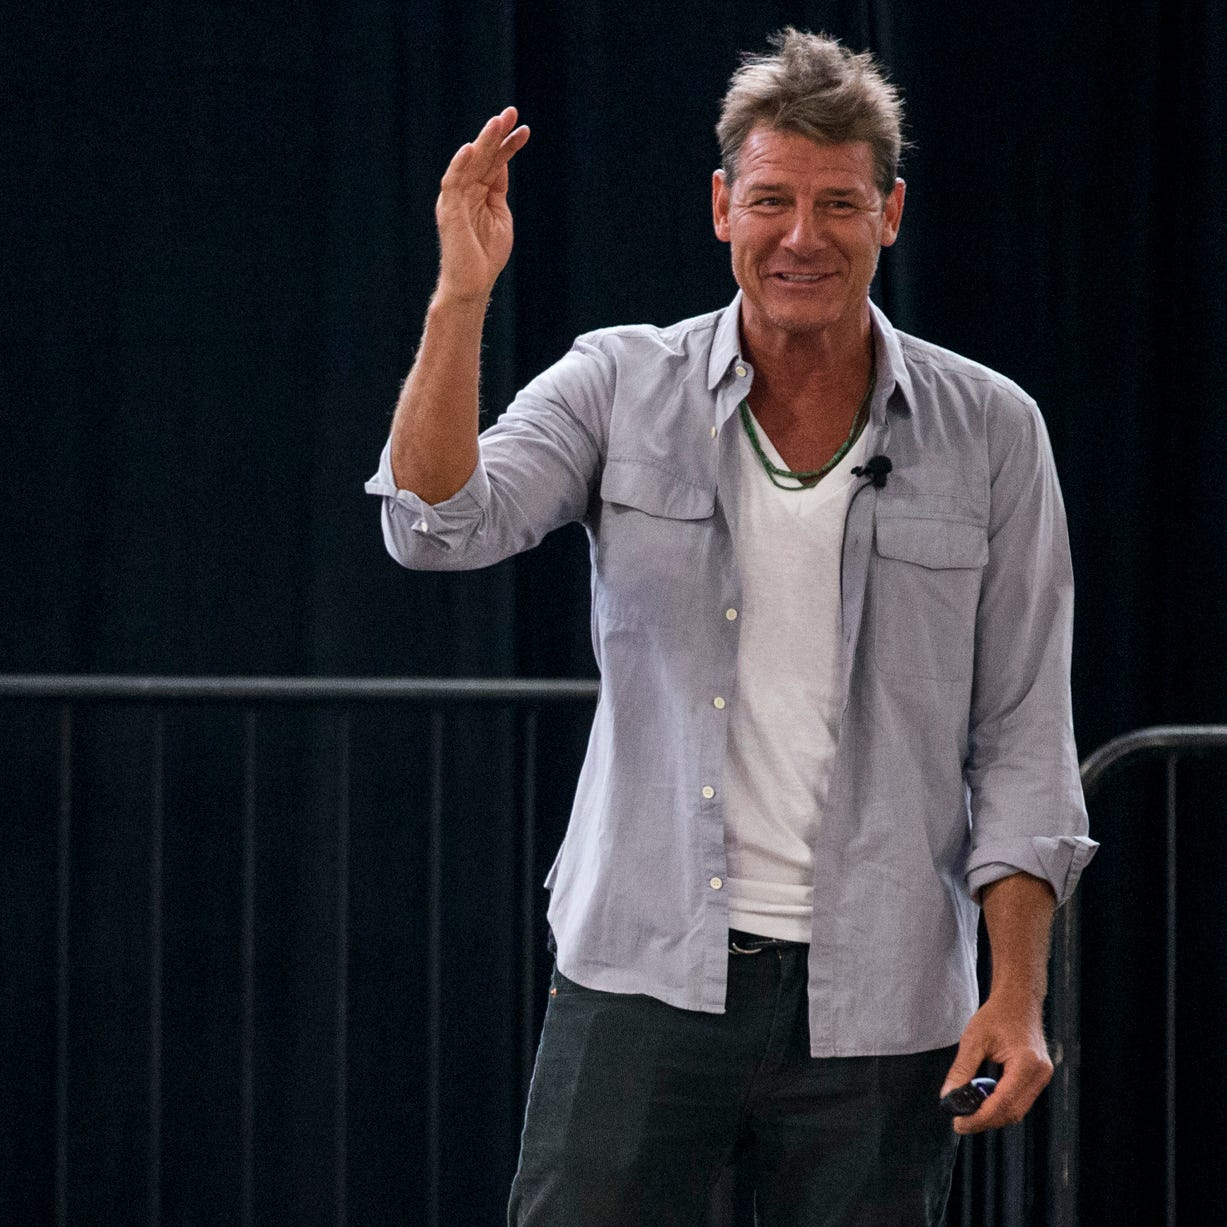 'Trading Spaces' star Ty Pennington shares home renovation tips during Valley visit